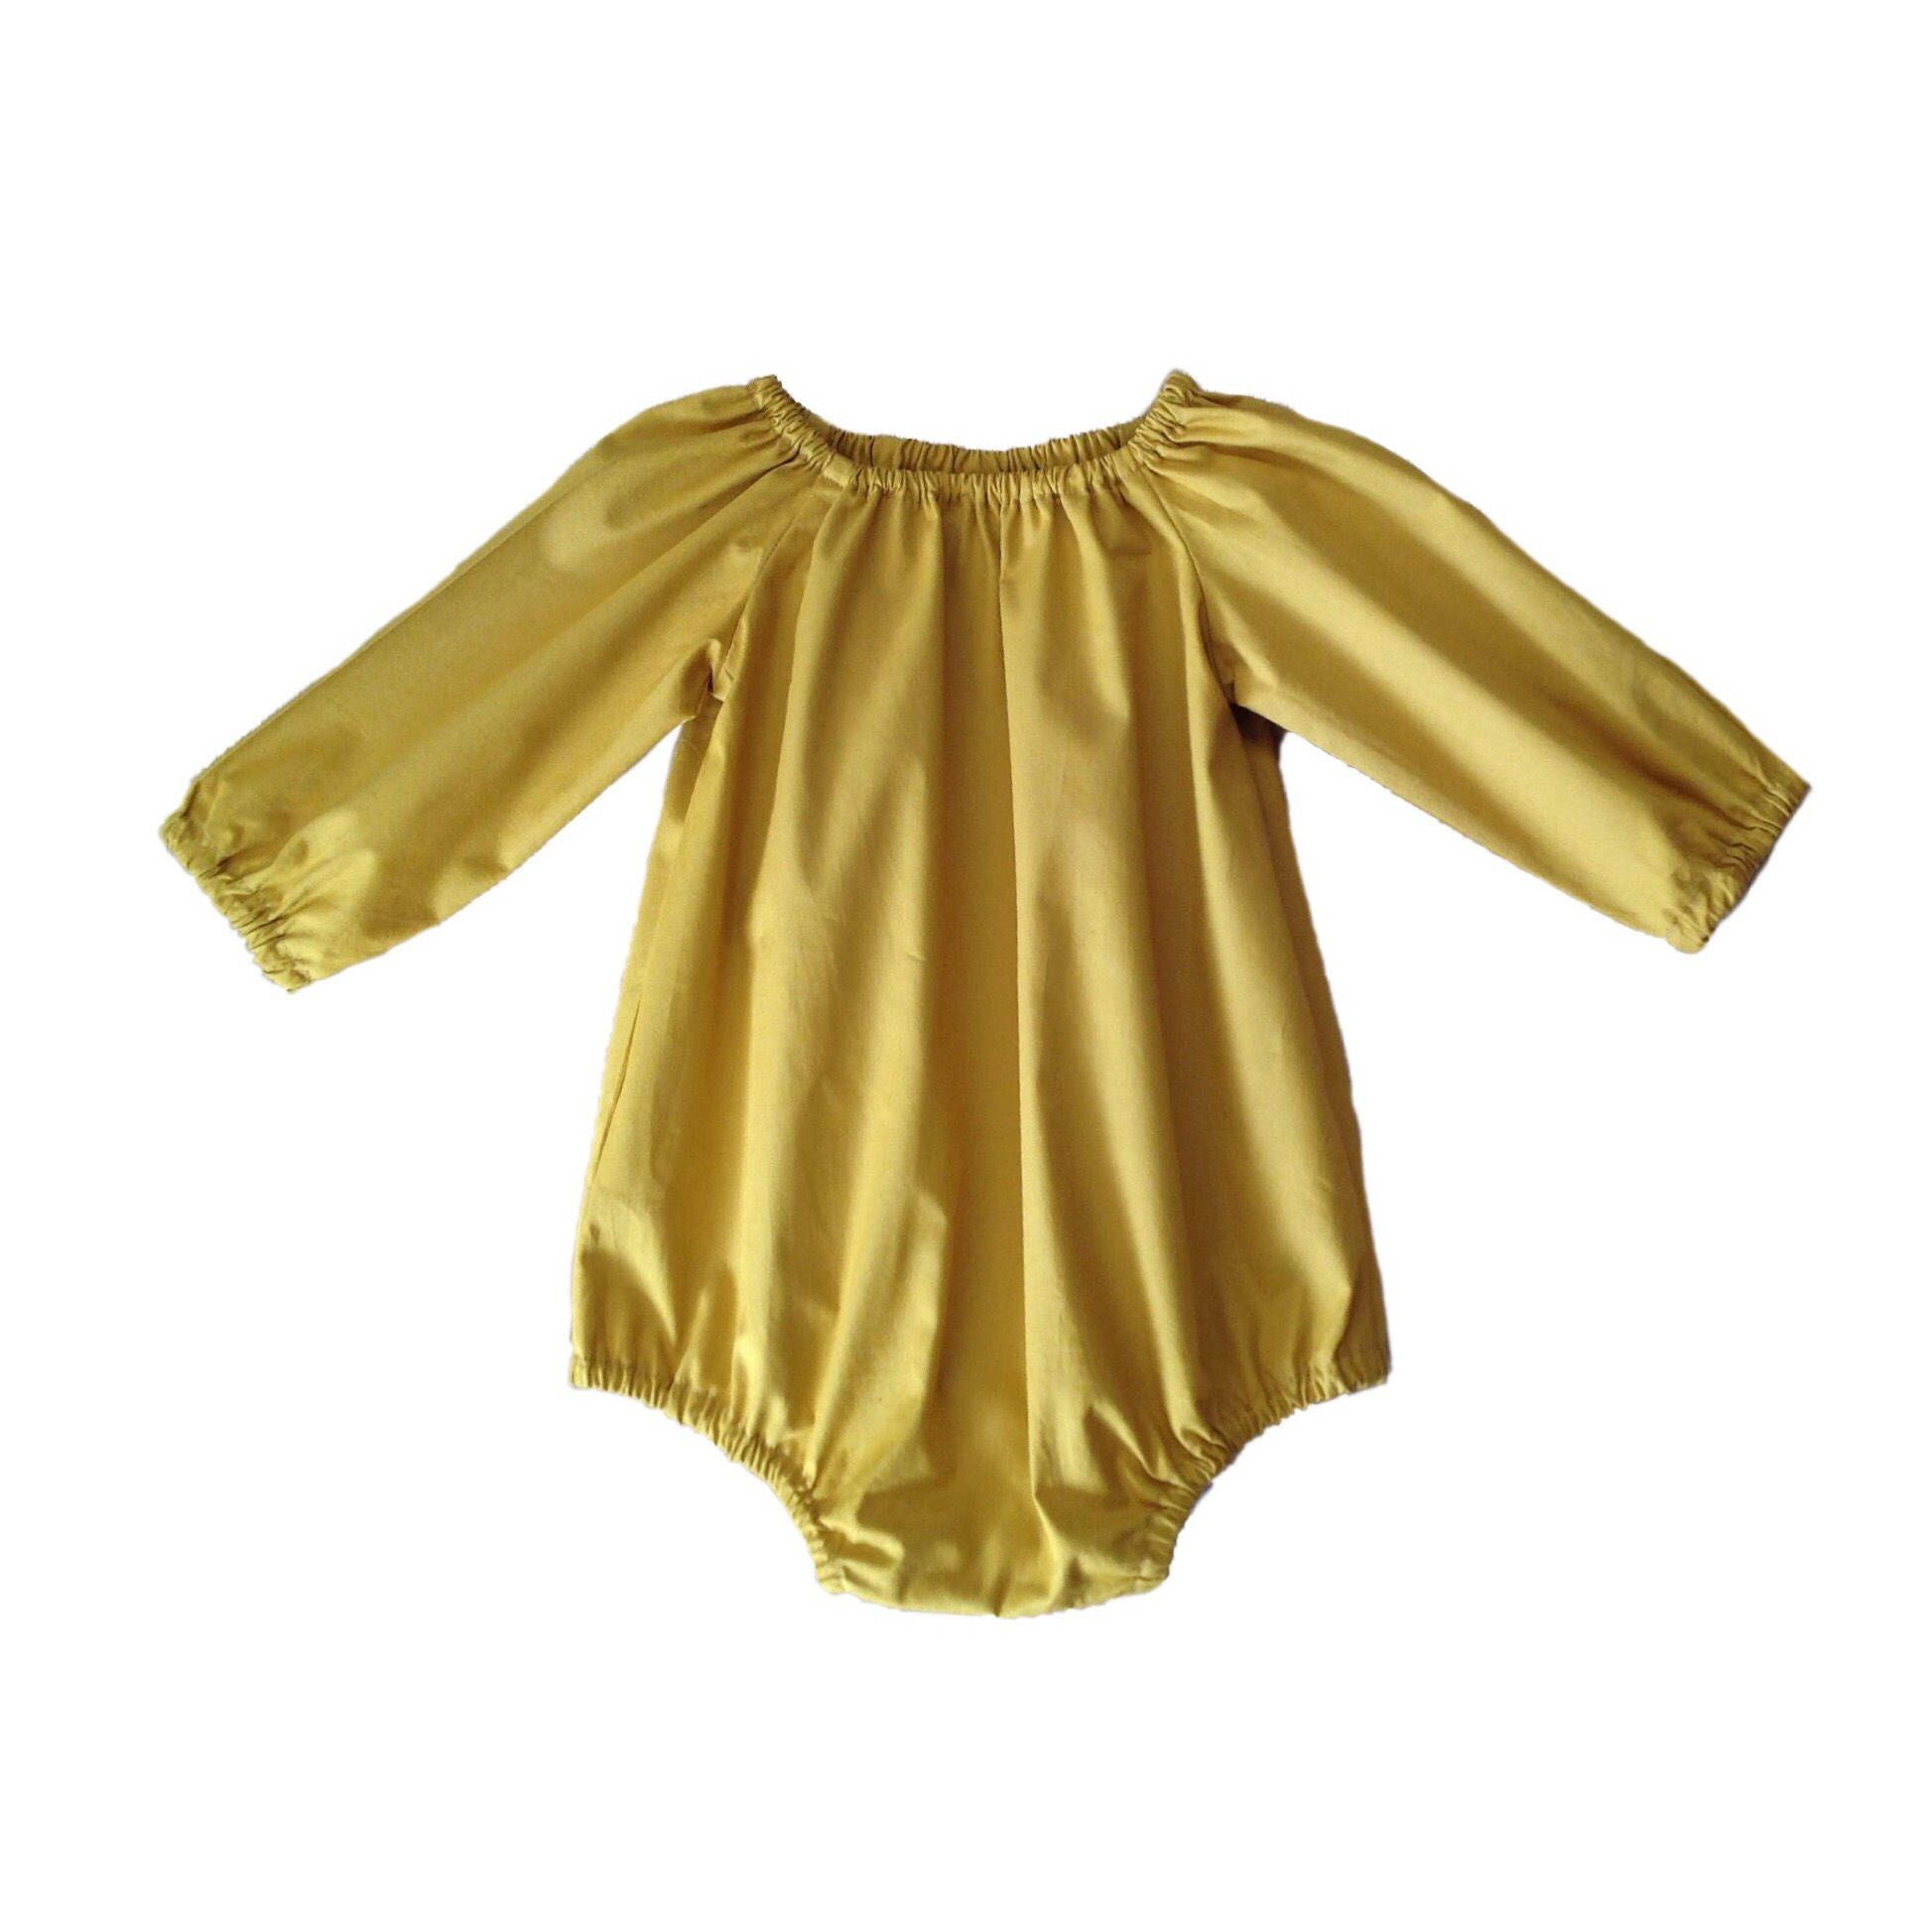 Baby Romper Baby Fall Outfit Girls Fall Romper Baby Fall Romper